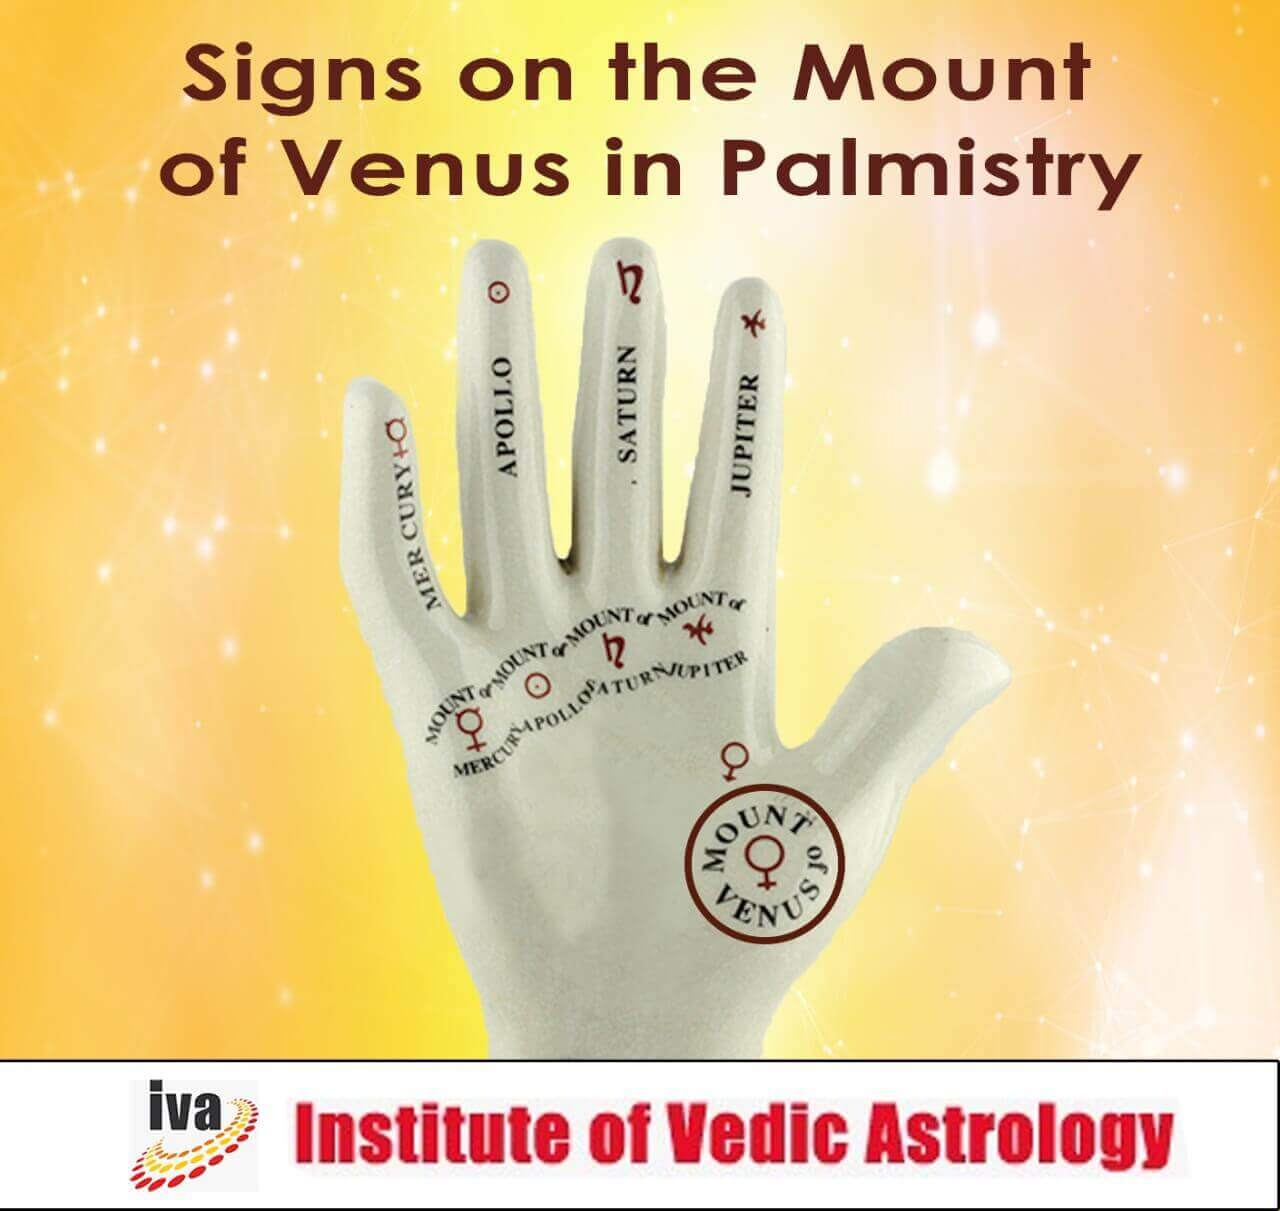 Signs on mount of Venus palmistry